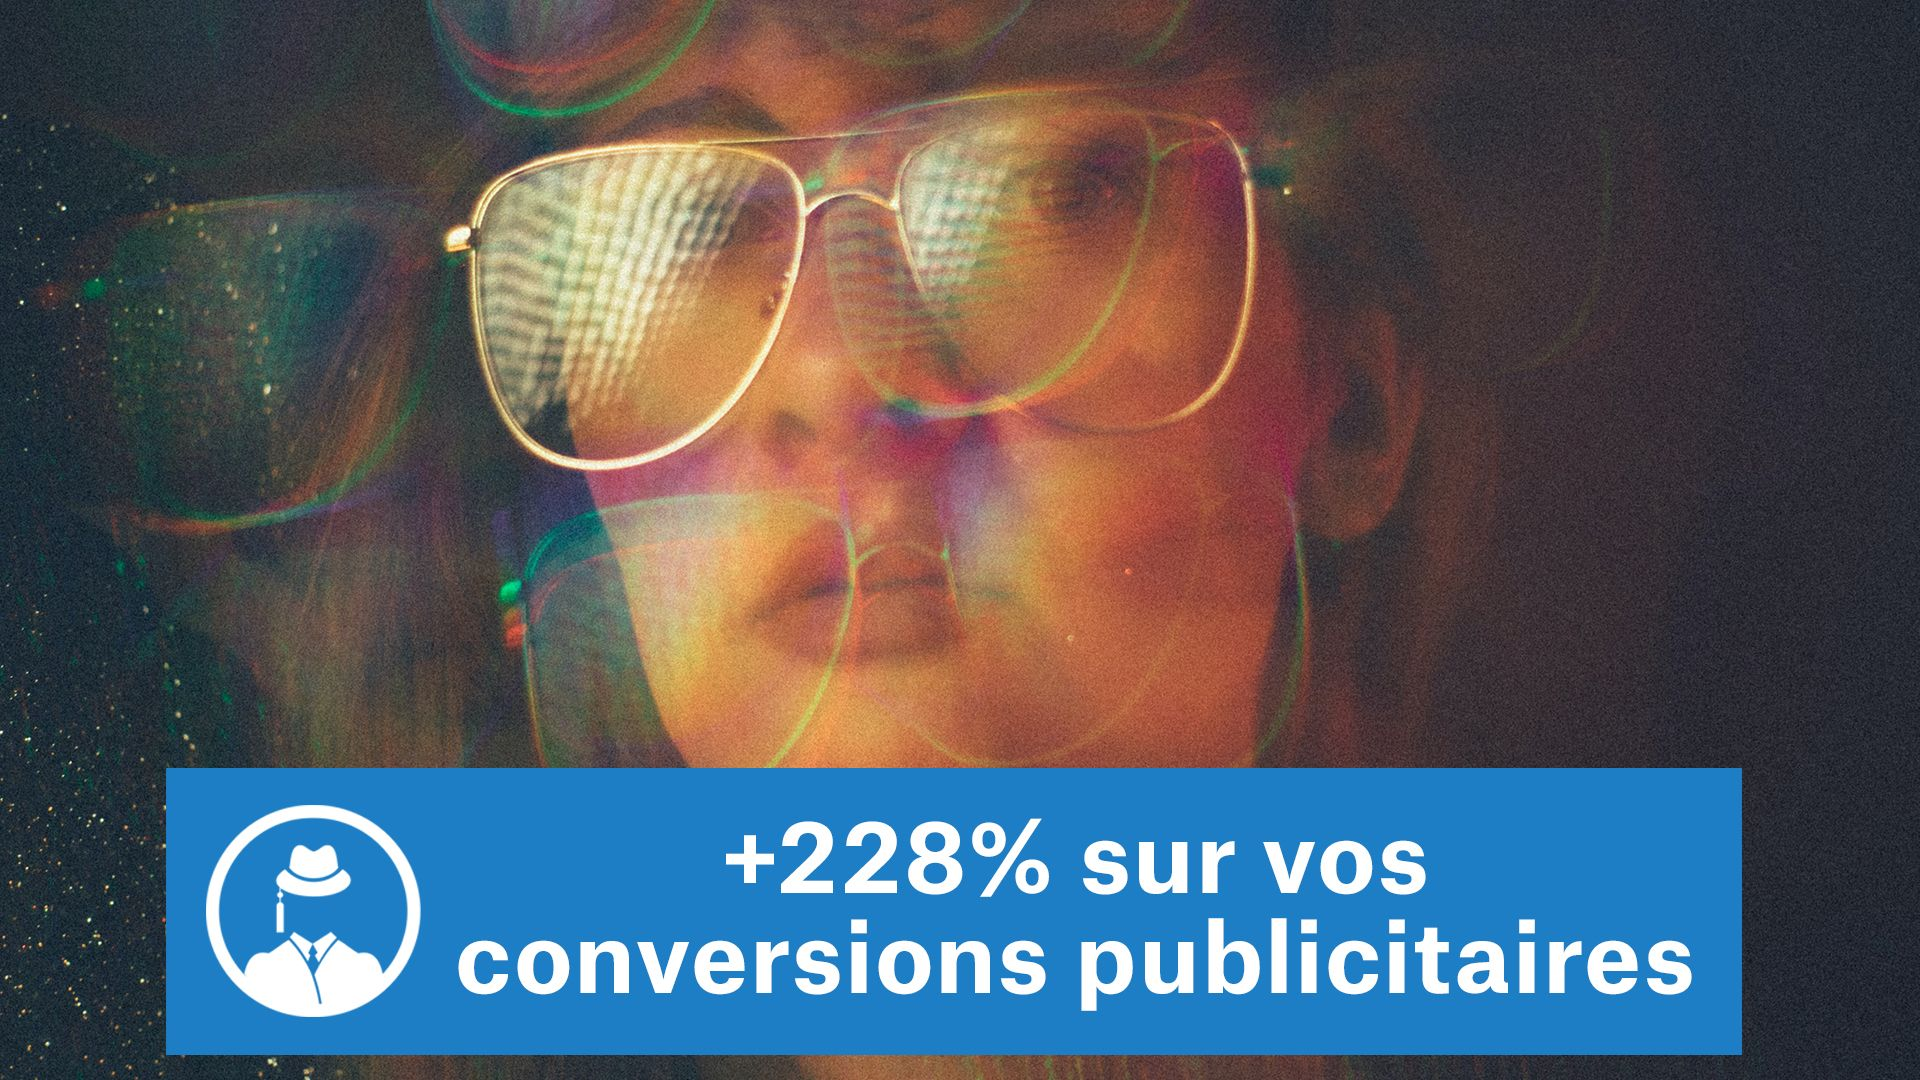 +228% sur vos conversions publicitaires #GrowthHacking #WebMarketing #FormationGrowthHacking #CentreDeFormationFrance #TunnelAARRR #AARRR #SocialMedia #CommunityManagement #SEO #MarketingDigital #SiteWeb